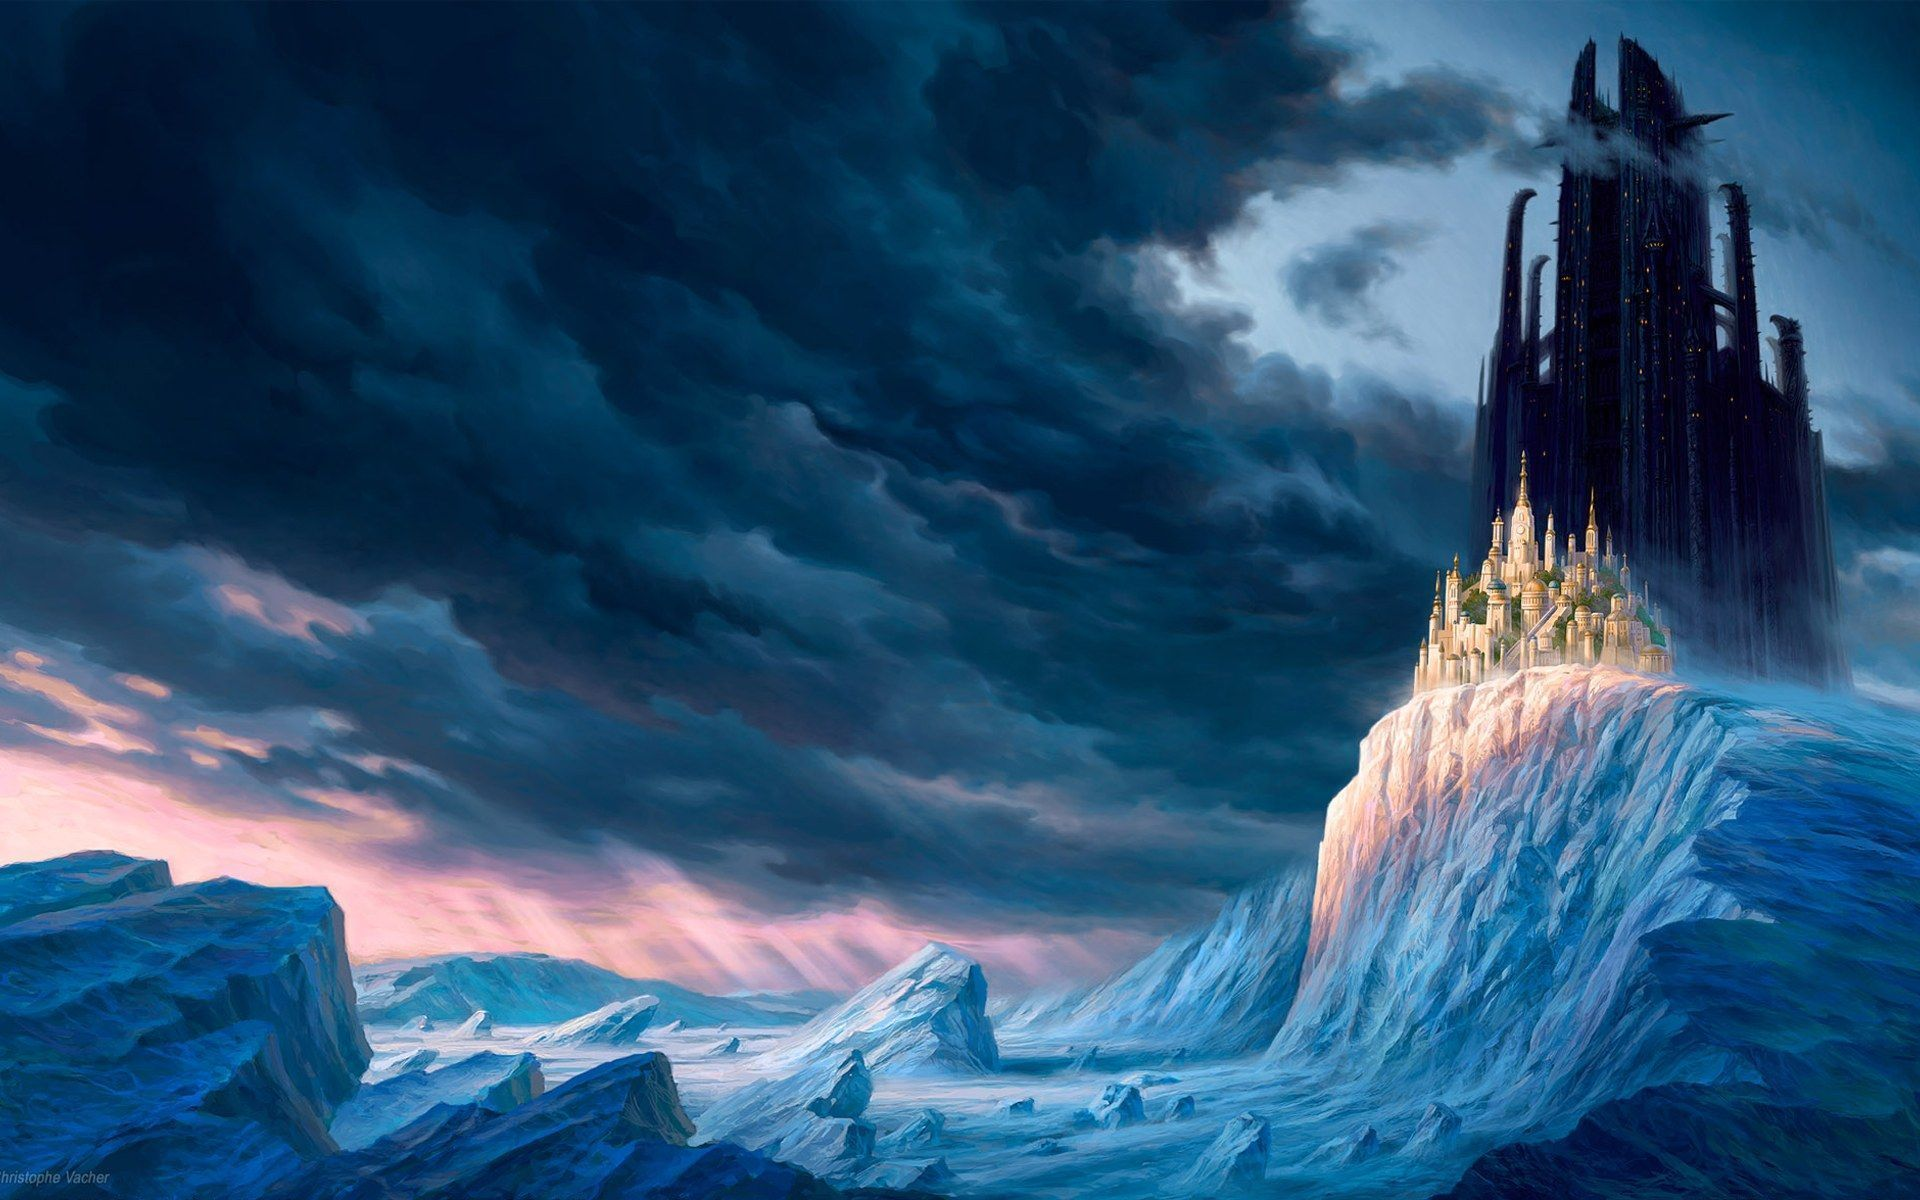 Great Wallpaper Harry Potter Scenery - latest?cb\u003d20170914172151  Perfect Image Reference_199677.jpg/revision/latest?cb\u003d20170914172151